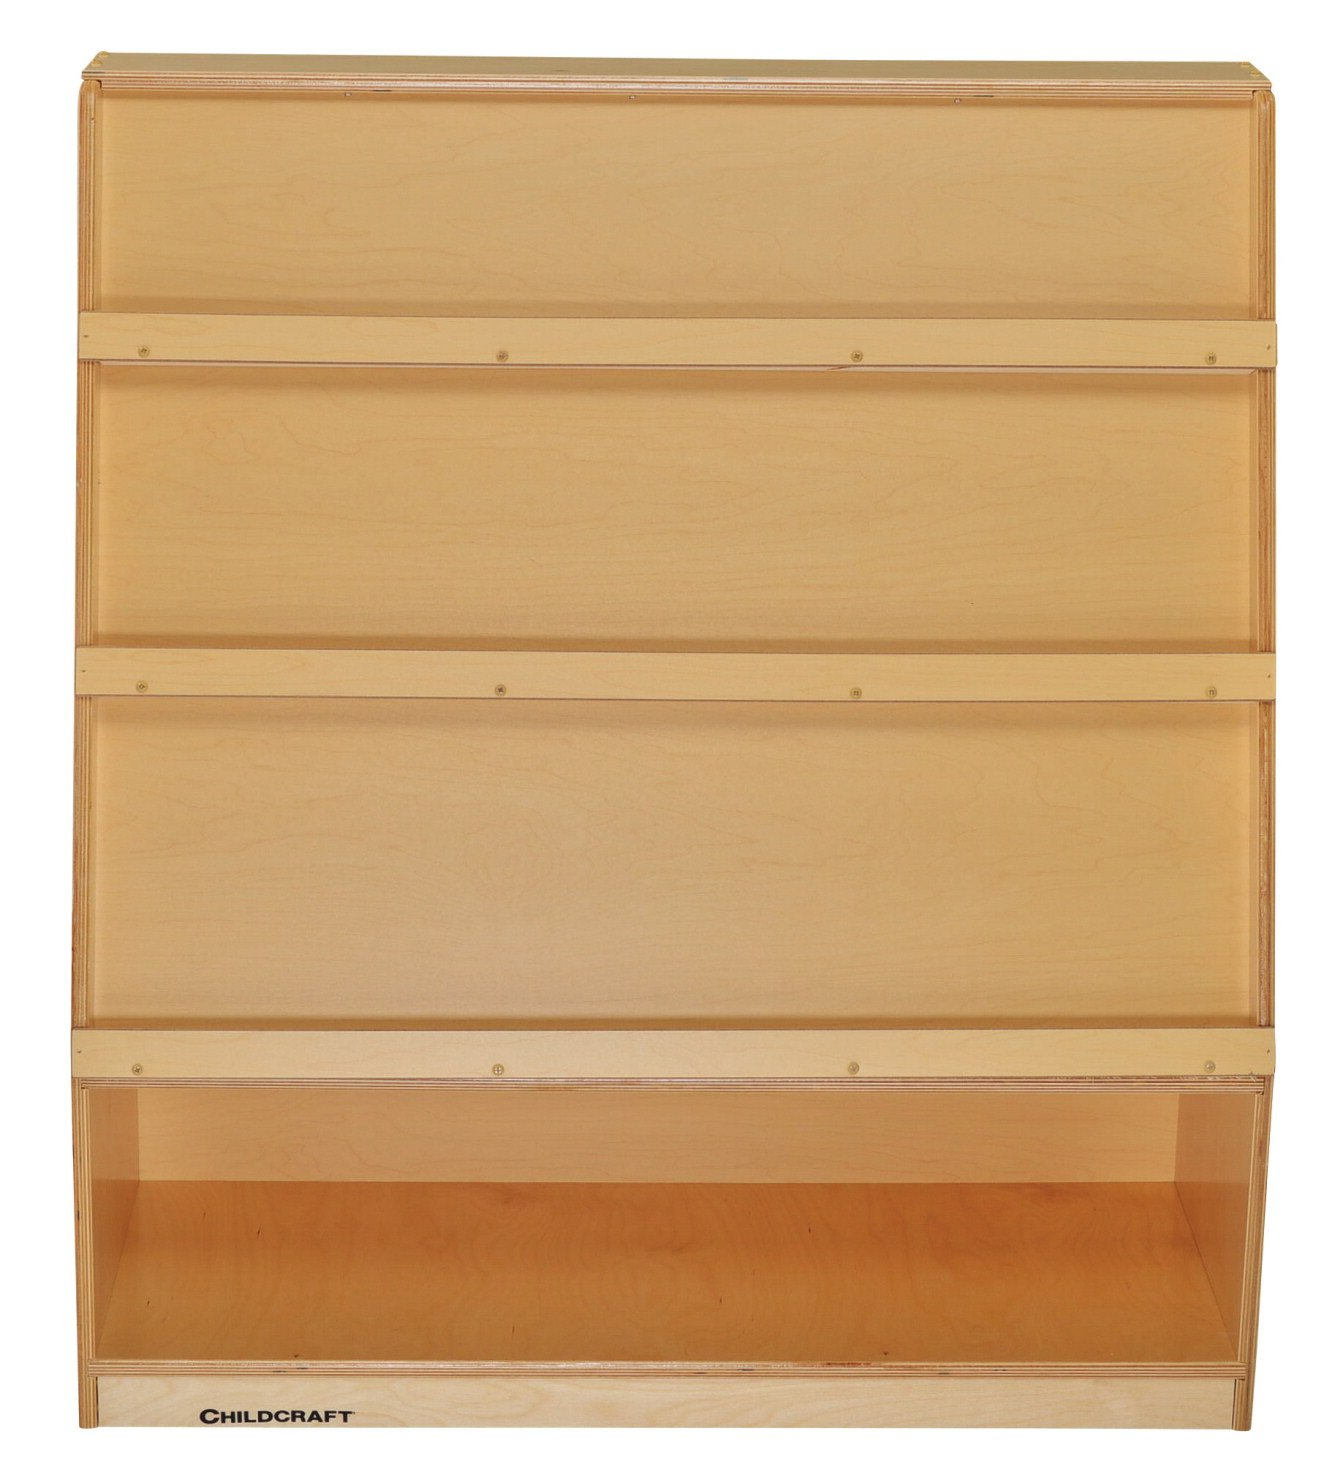 Childcraft 204146 Multi-Storage Book Mobile with 3 Shelves, Birch Veneer Panel, Acrylic, 36'' x 14-1/2'' x 40-13/16'', Natural Wood Tone